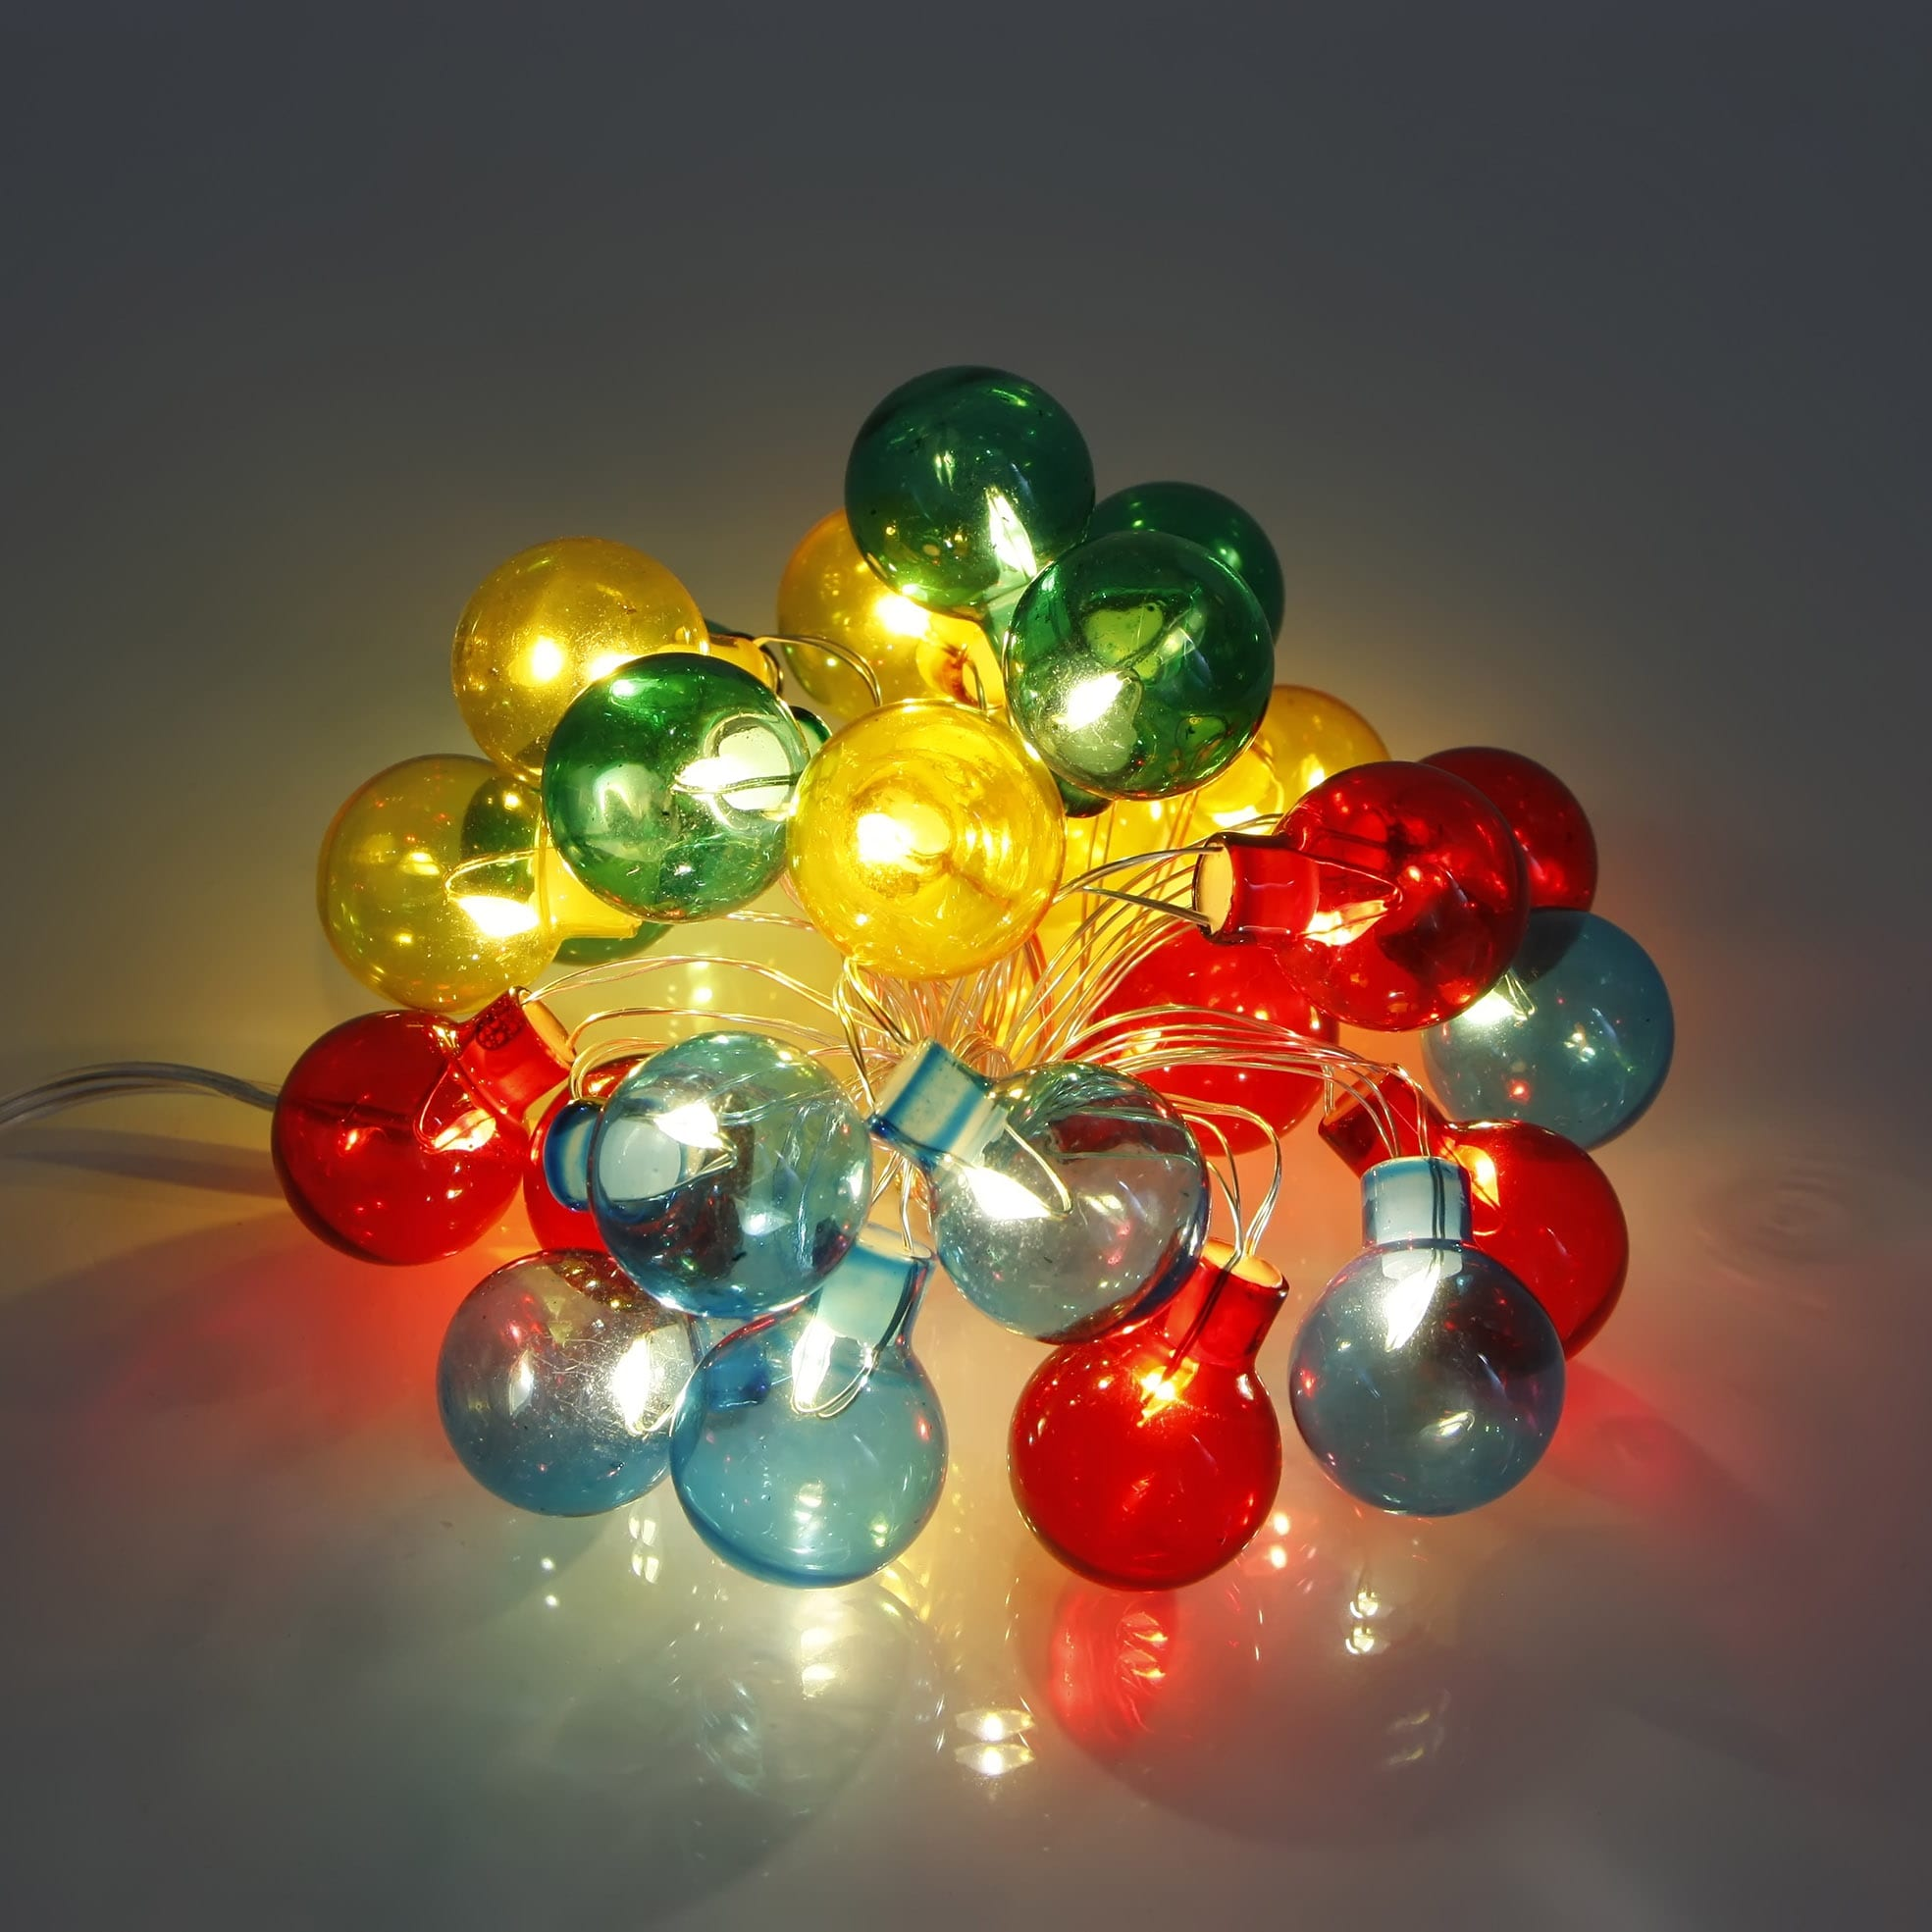 Prepainted Aluminum Steel Sheet Color Changing Led Holiday Light - MM LED SMD SL With Caps MYHH67498 – Zhongxin